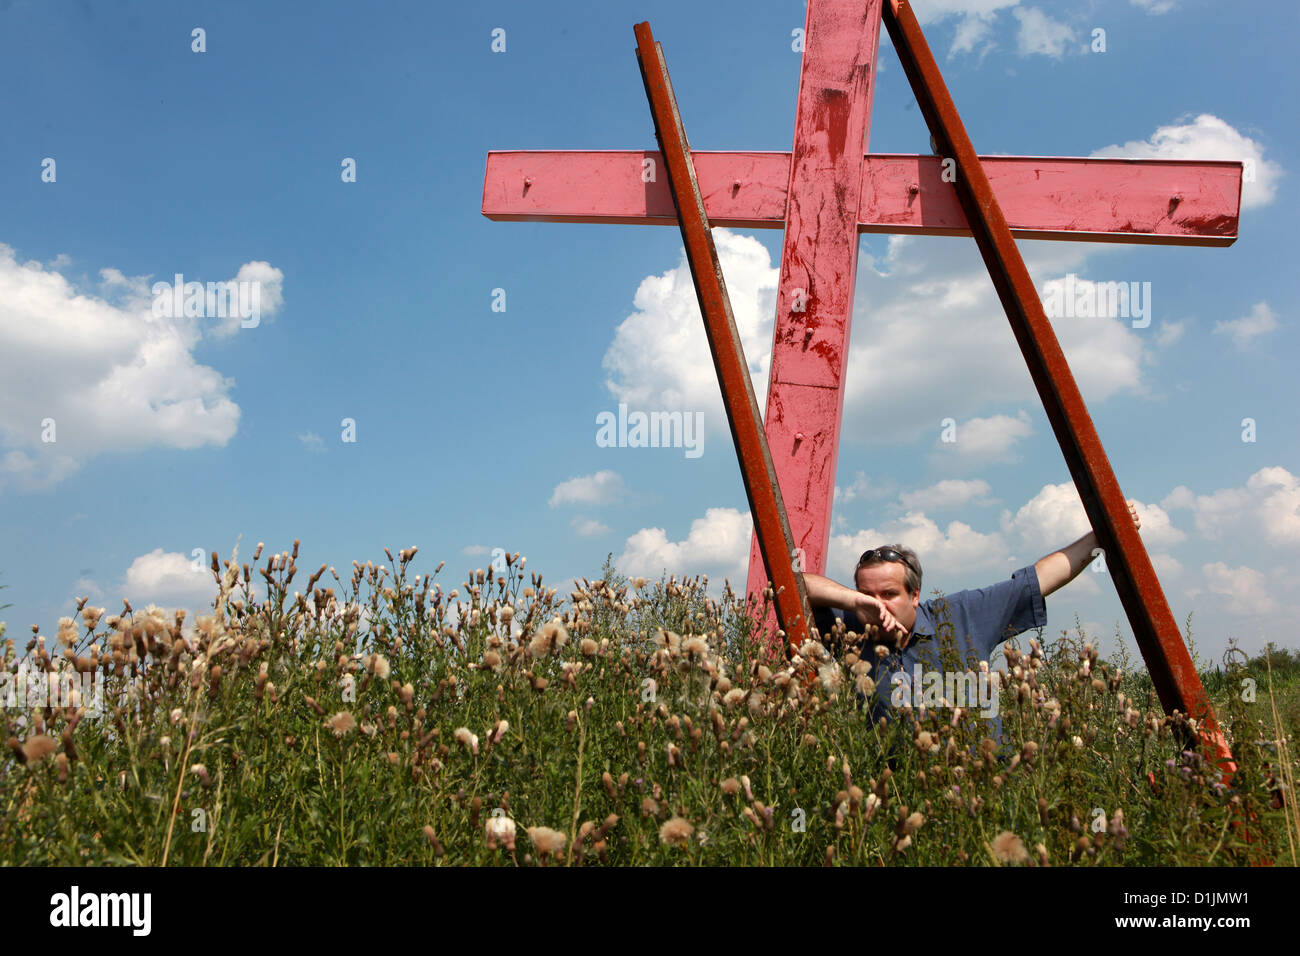 Dobronin massacre at the event from May 19, 1945 massacre committed by Czechs against a group of German citizens, - Stock Image